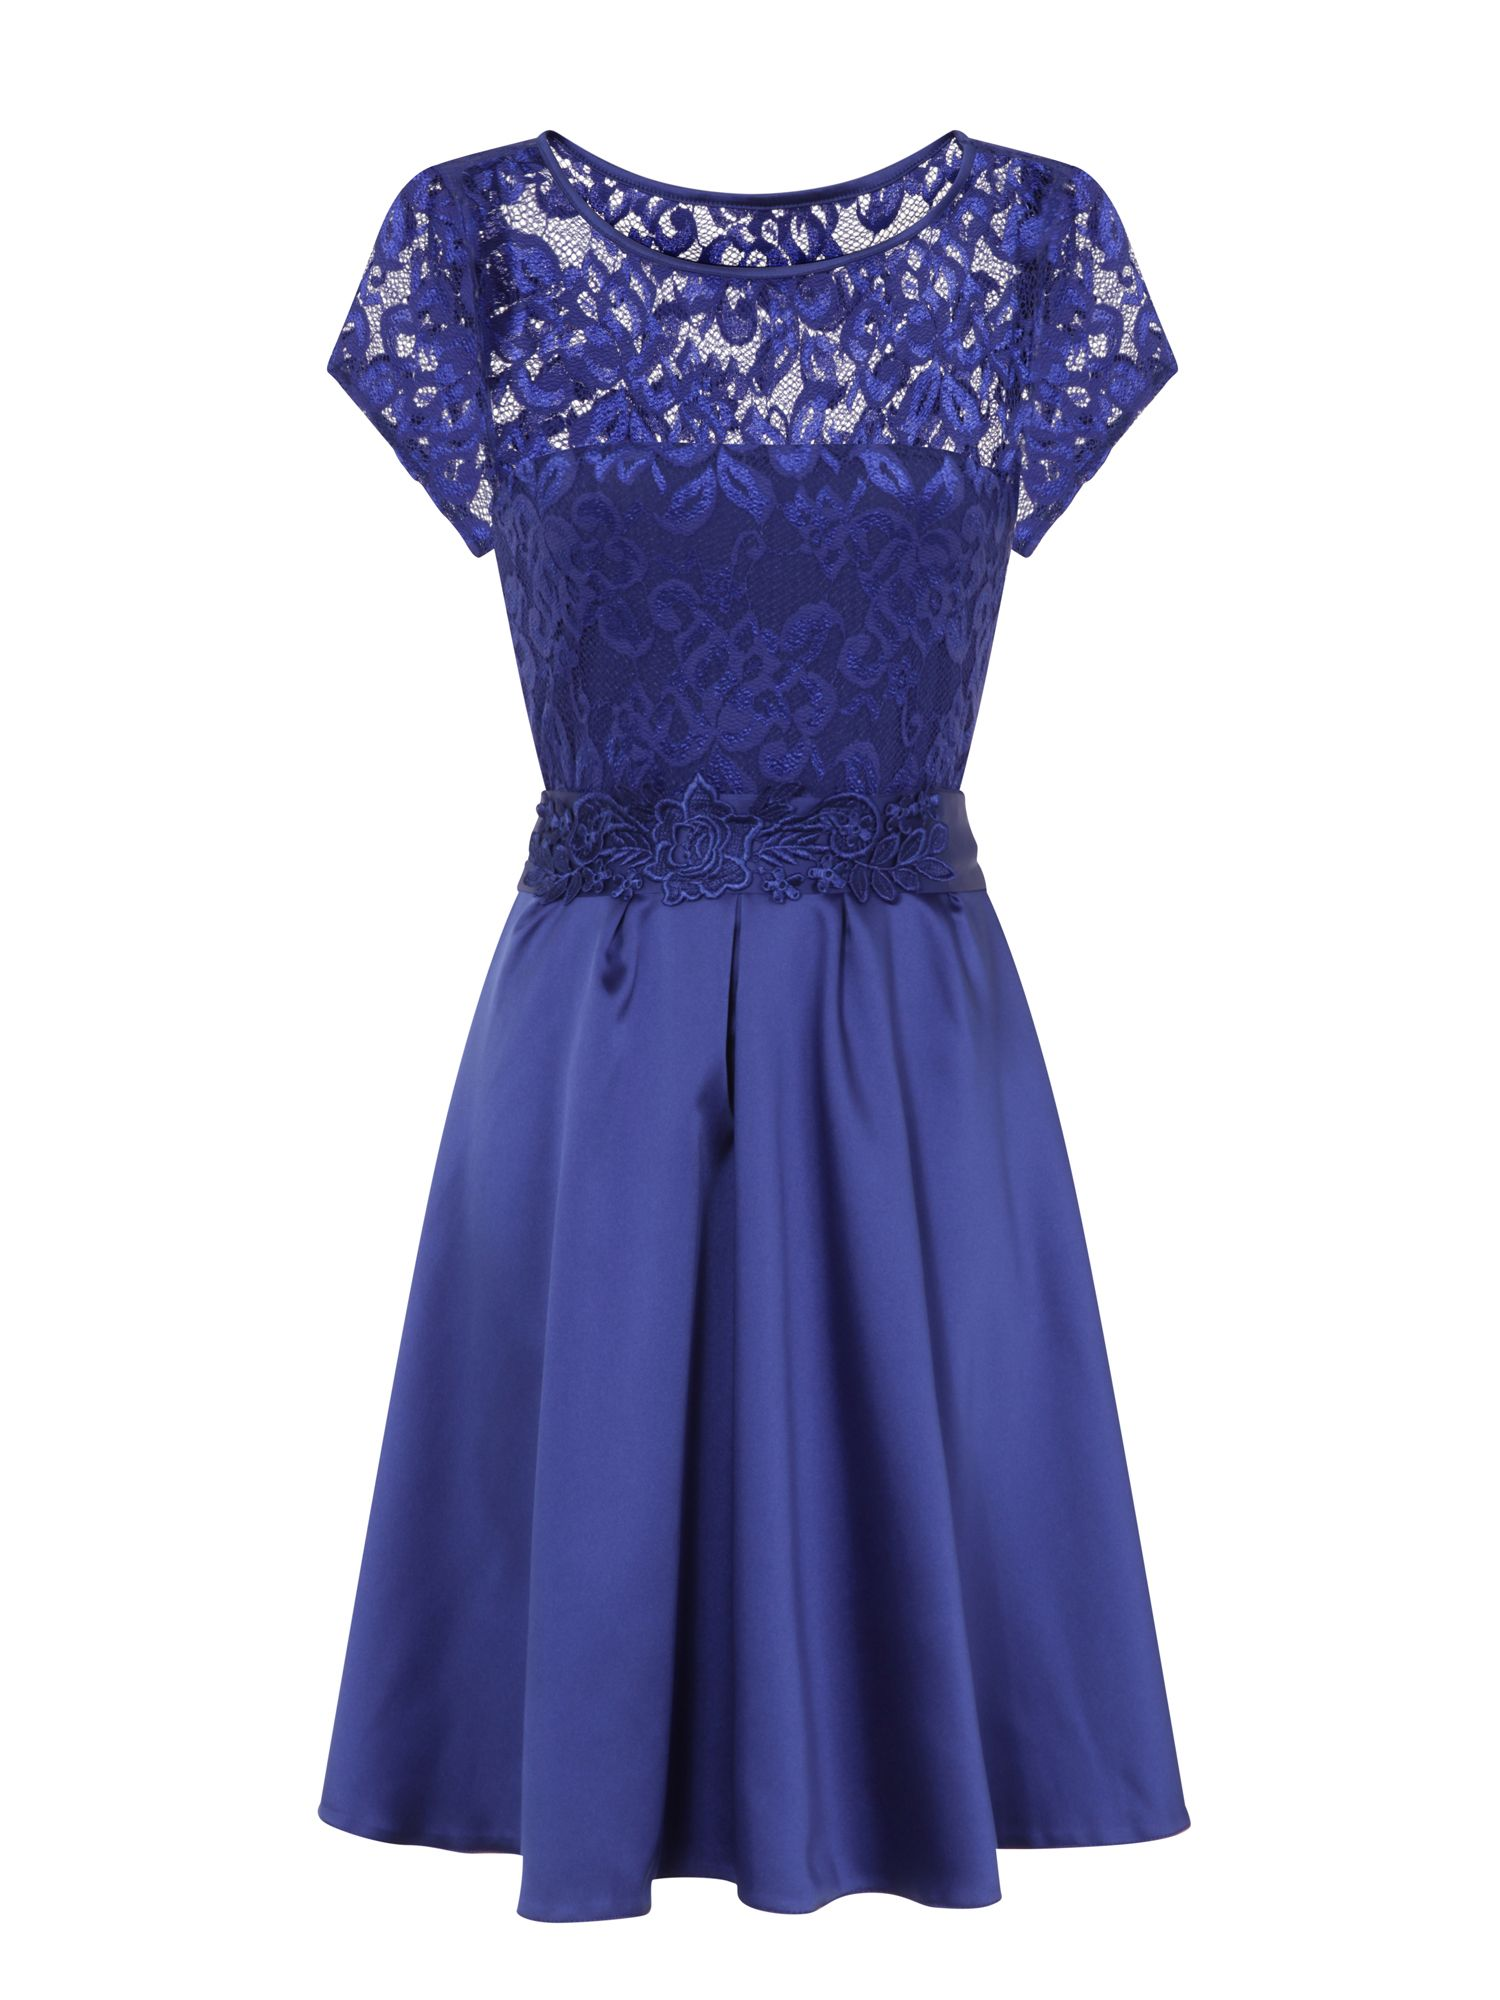 HotSquash Lace Ana Party Dress in Clever Fabric, Royal Blue